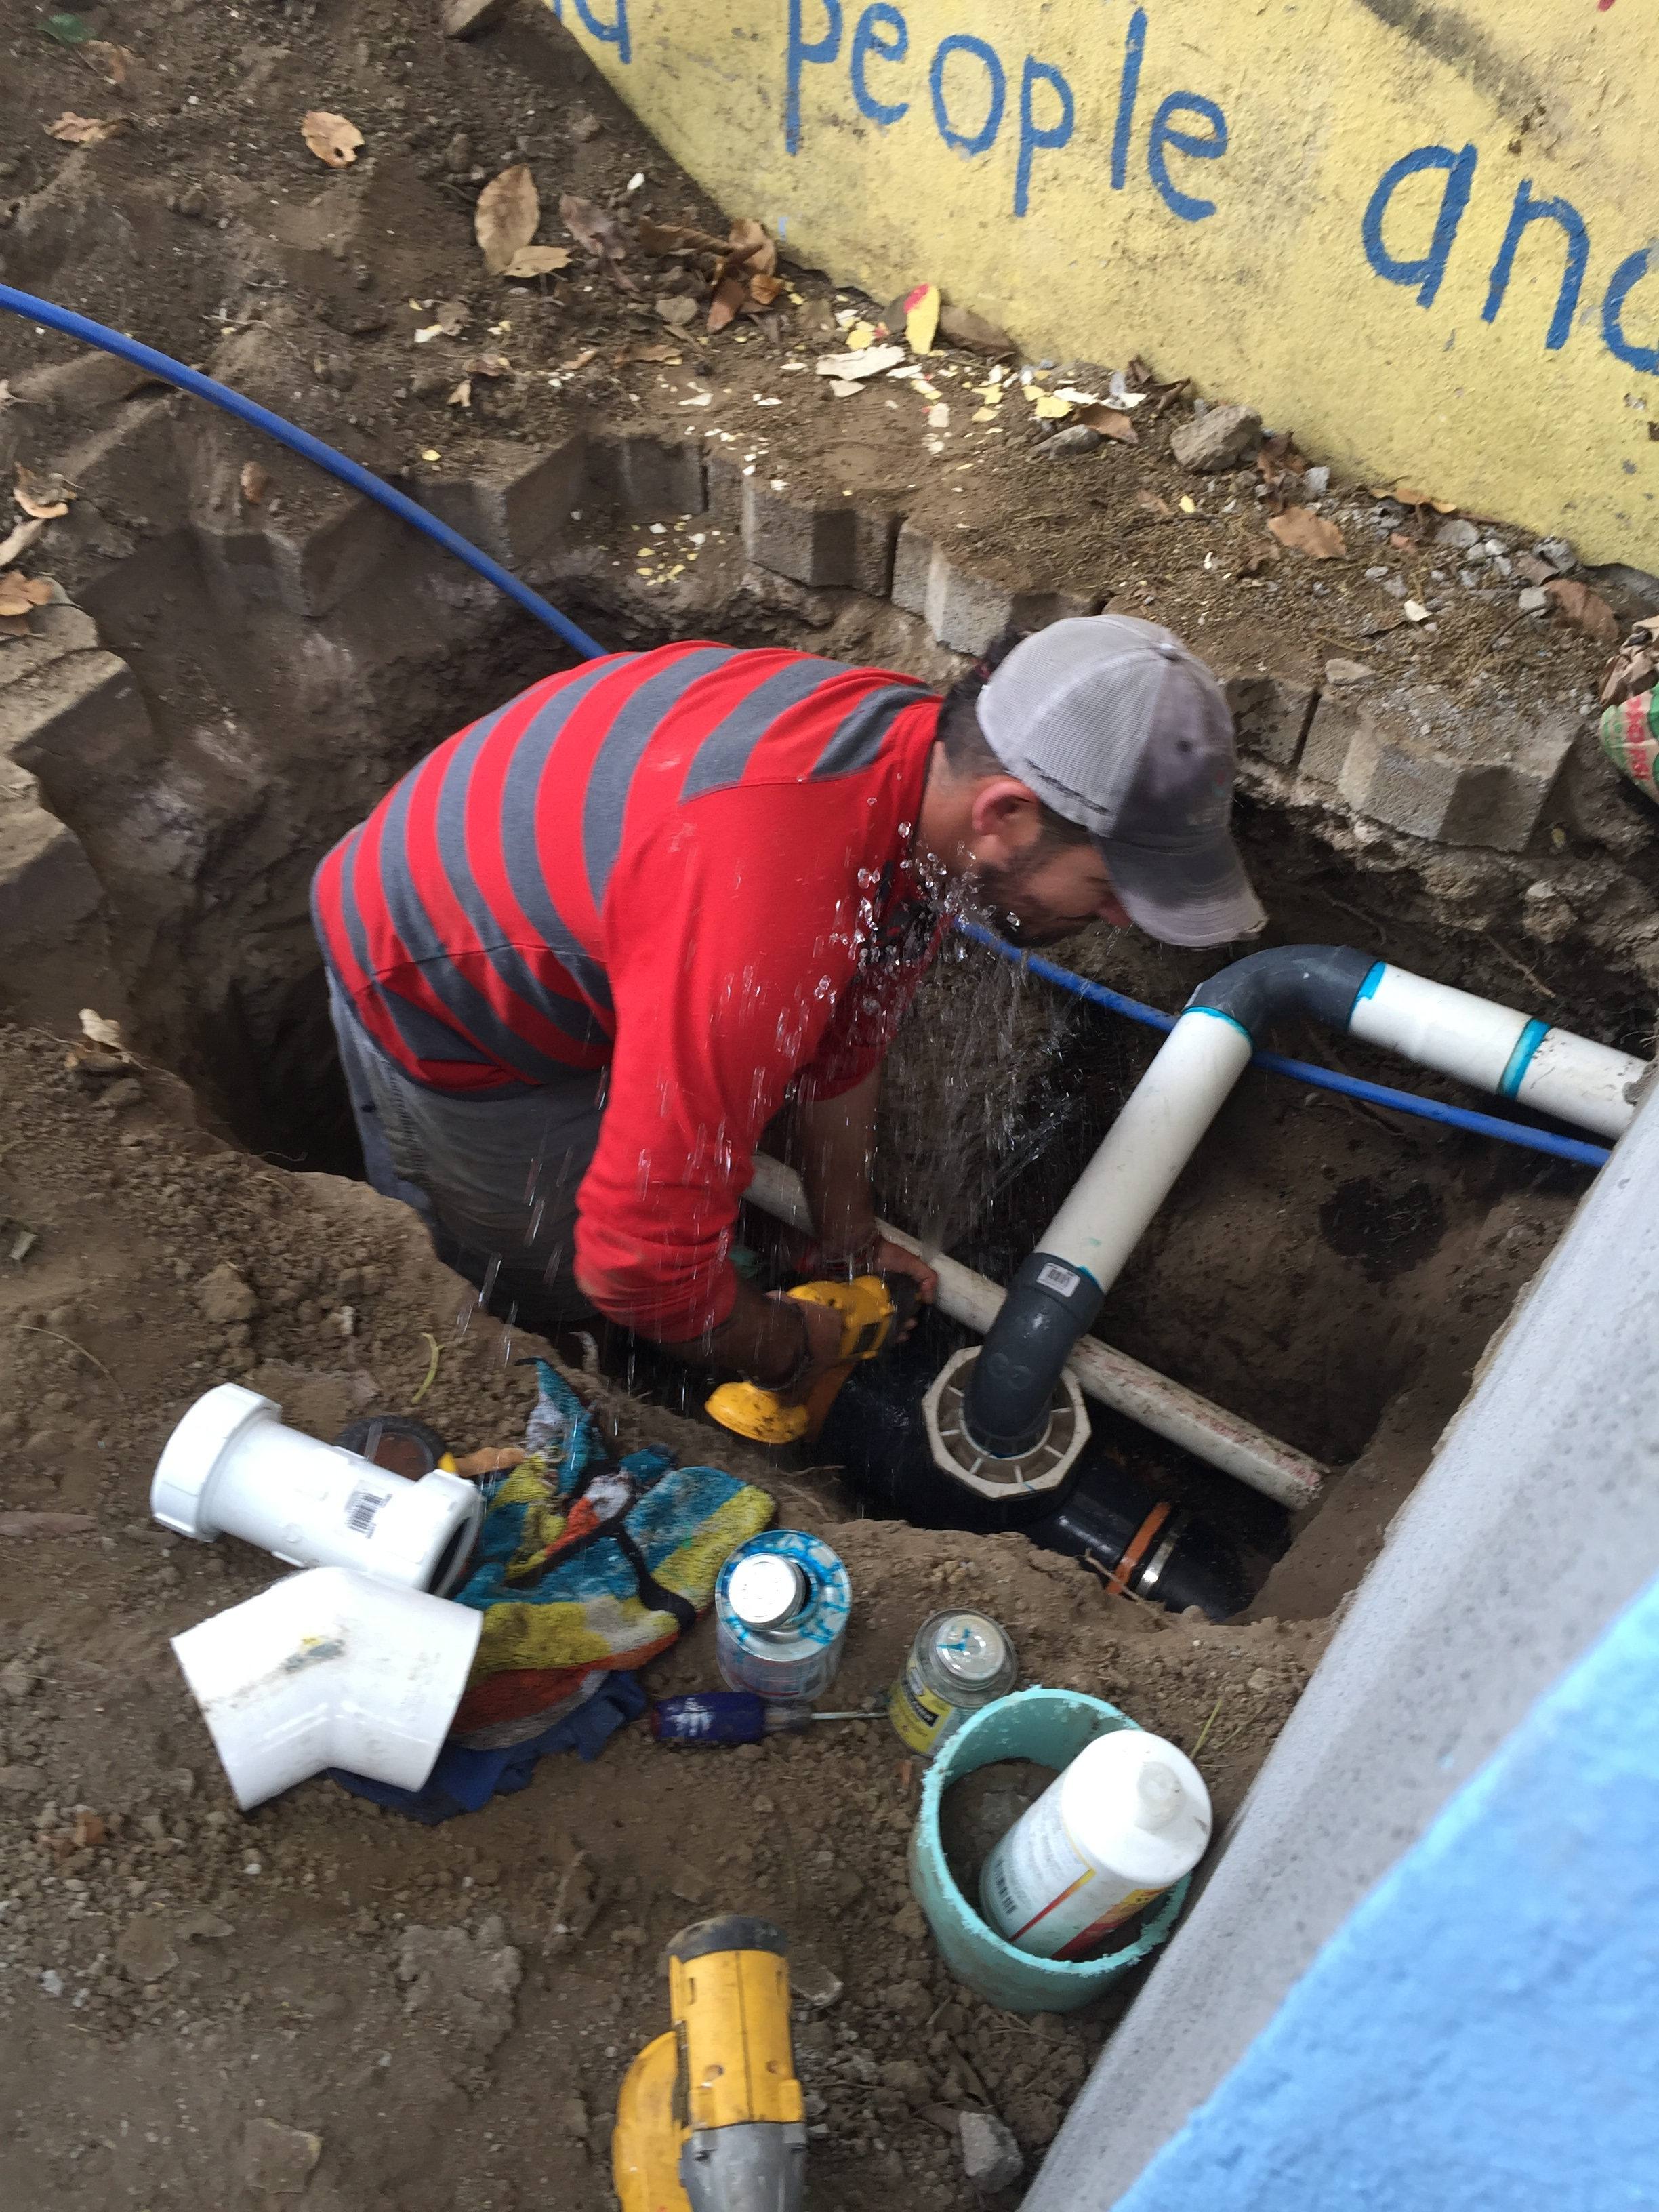 Tyson connecting the sewer and water lines for the new restrooms